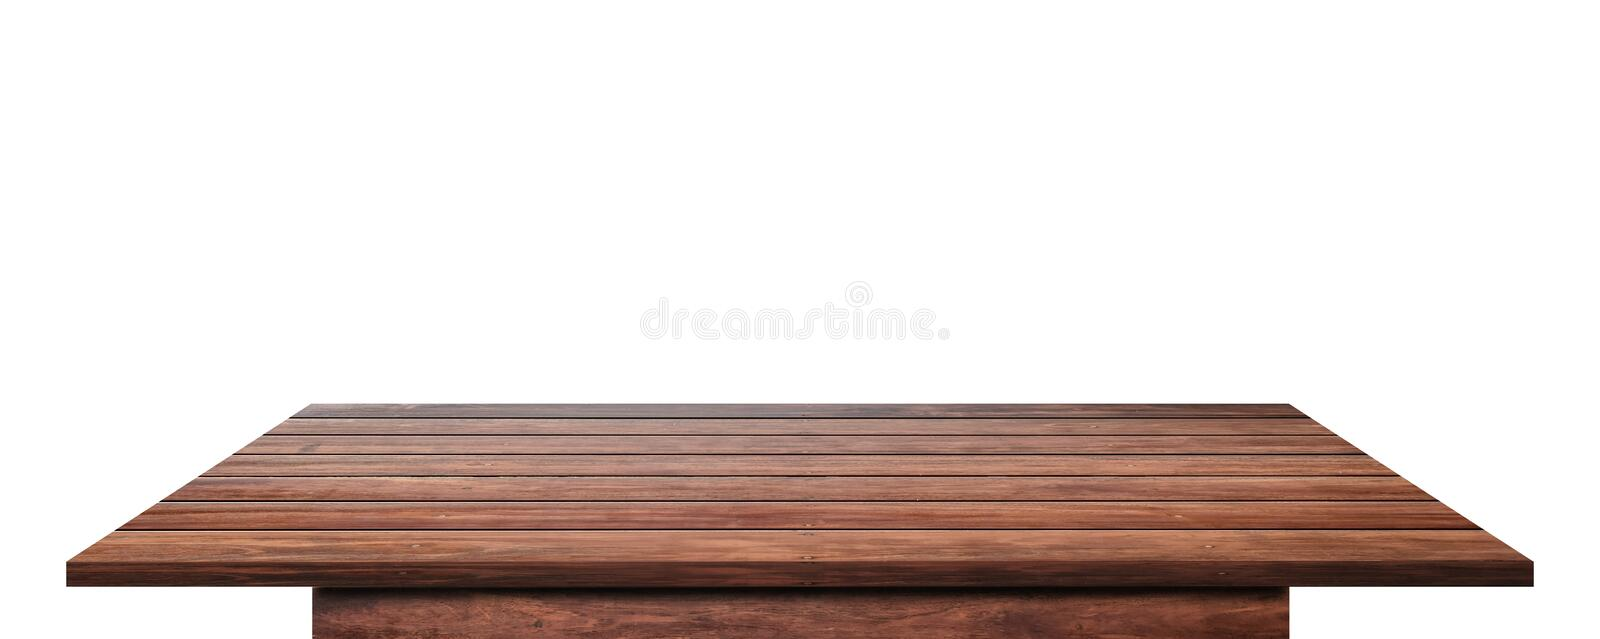 Empty wooden table top isolated on white background stock photos